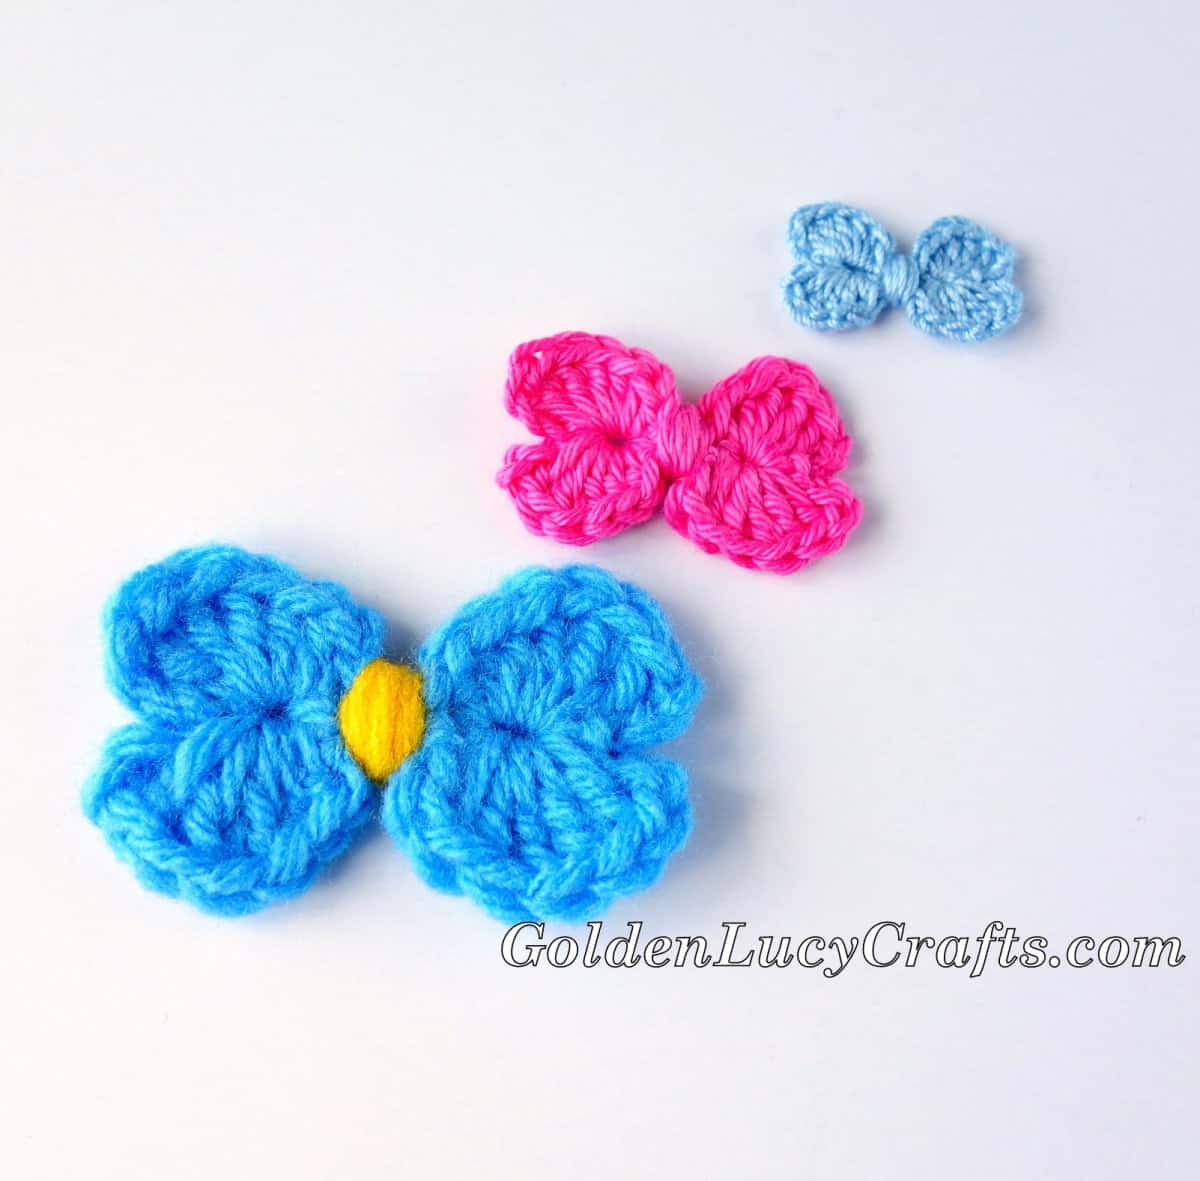 Three crochet bows in different sizes - large, medium and small.